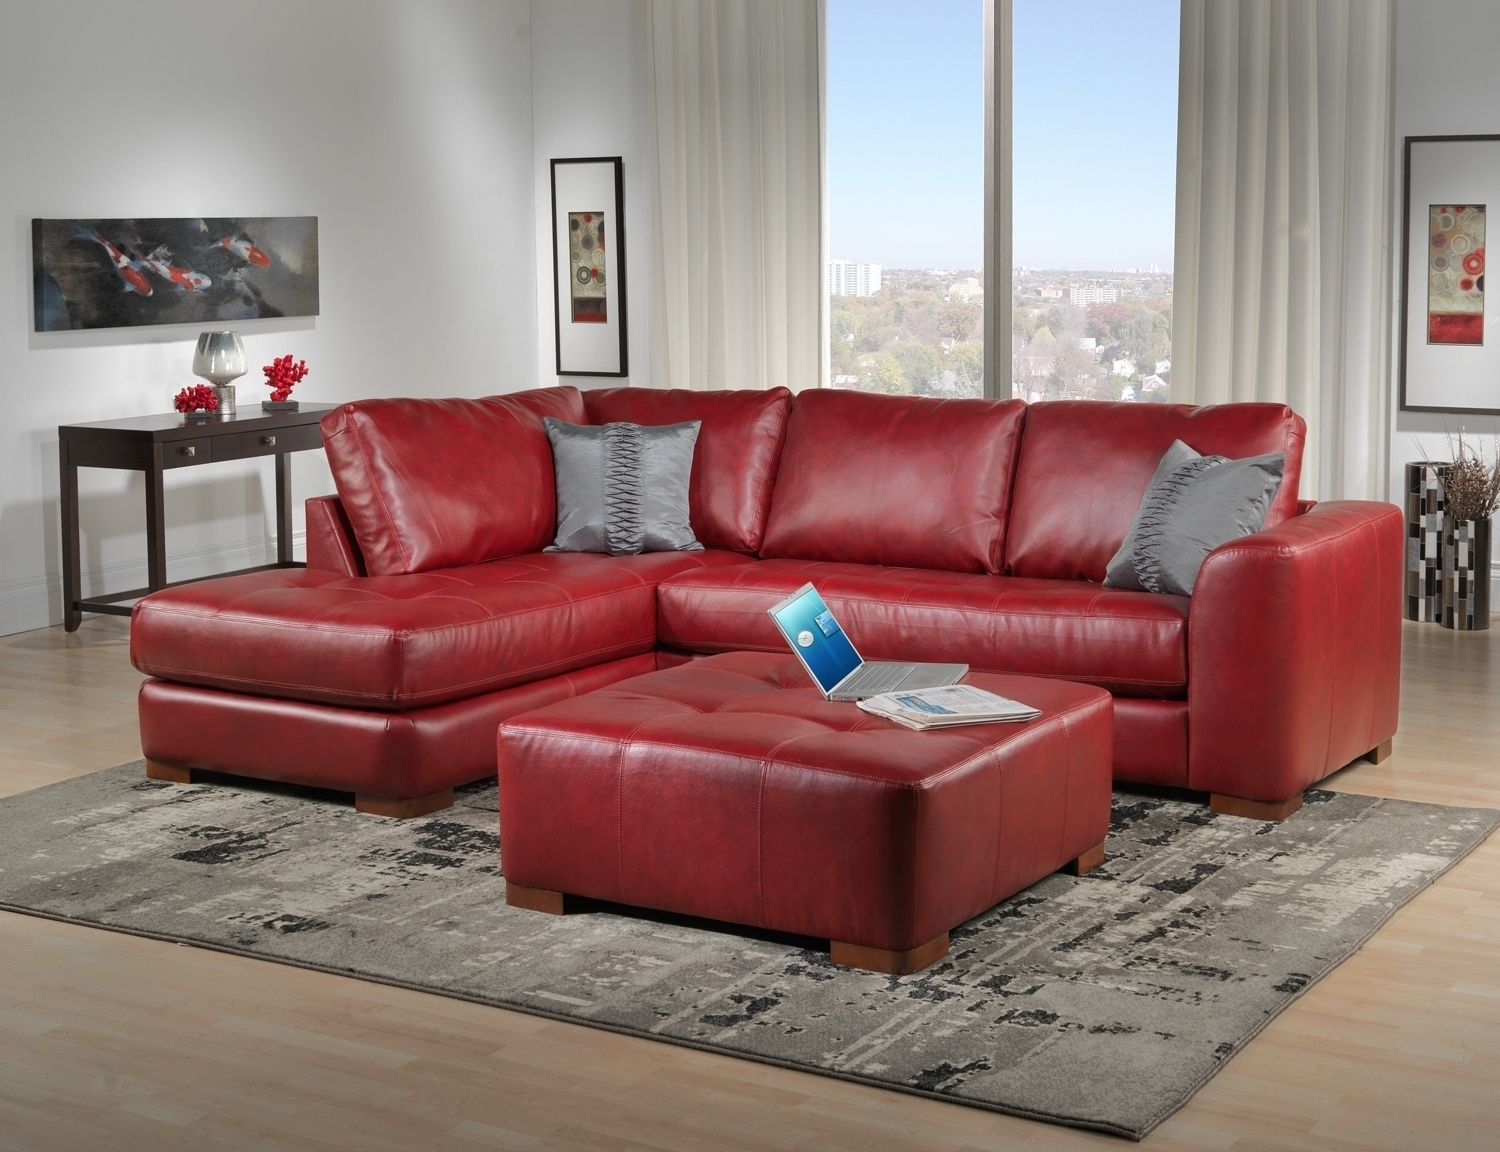 Living Room Ideas With Favorite Red Leather Couches For Living Room (View 5 of 15)